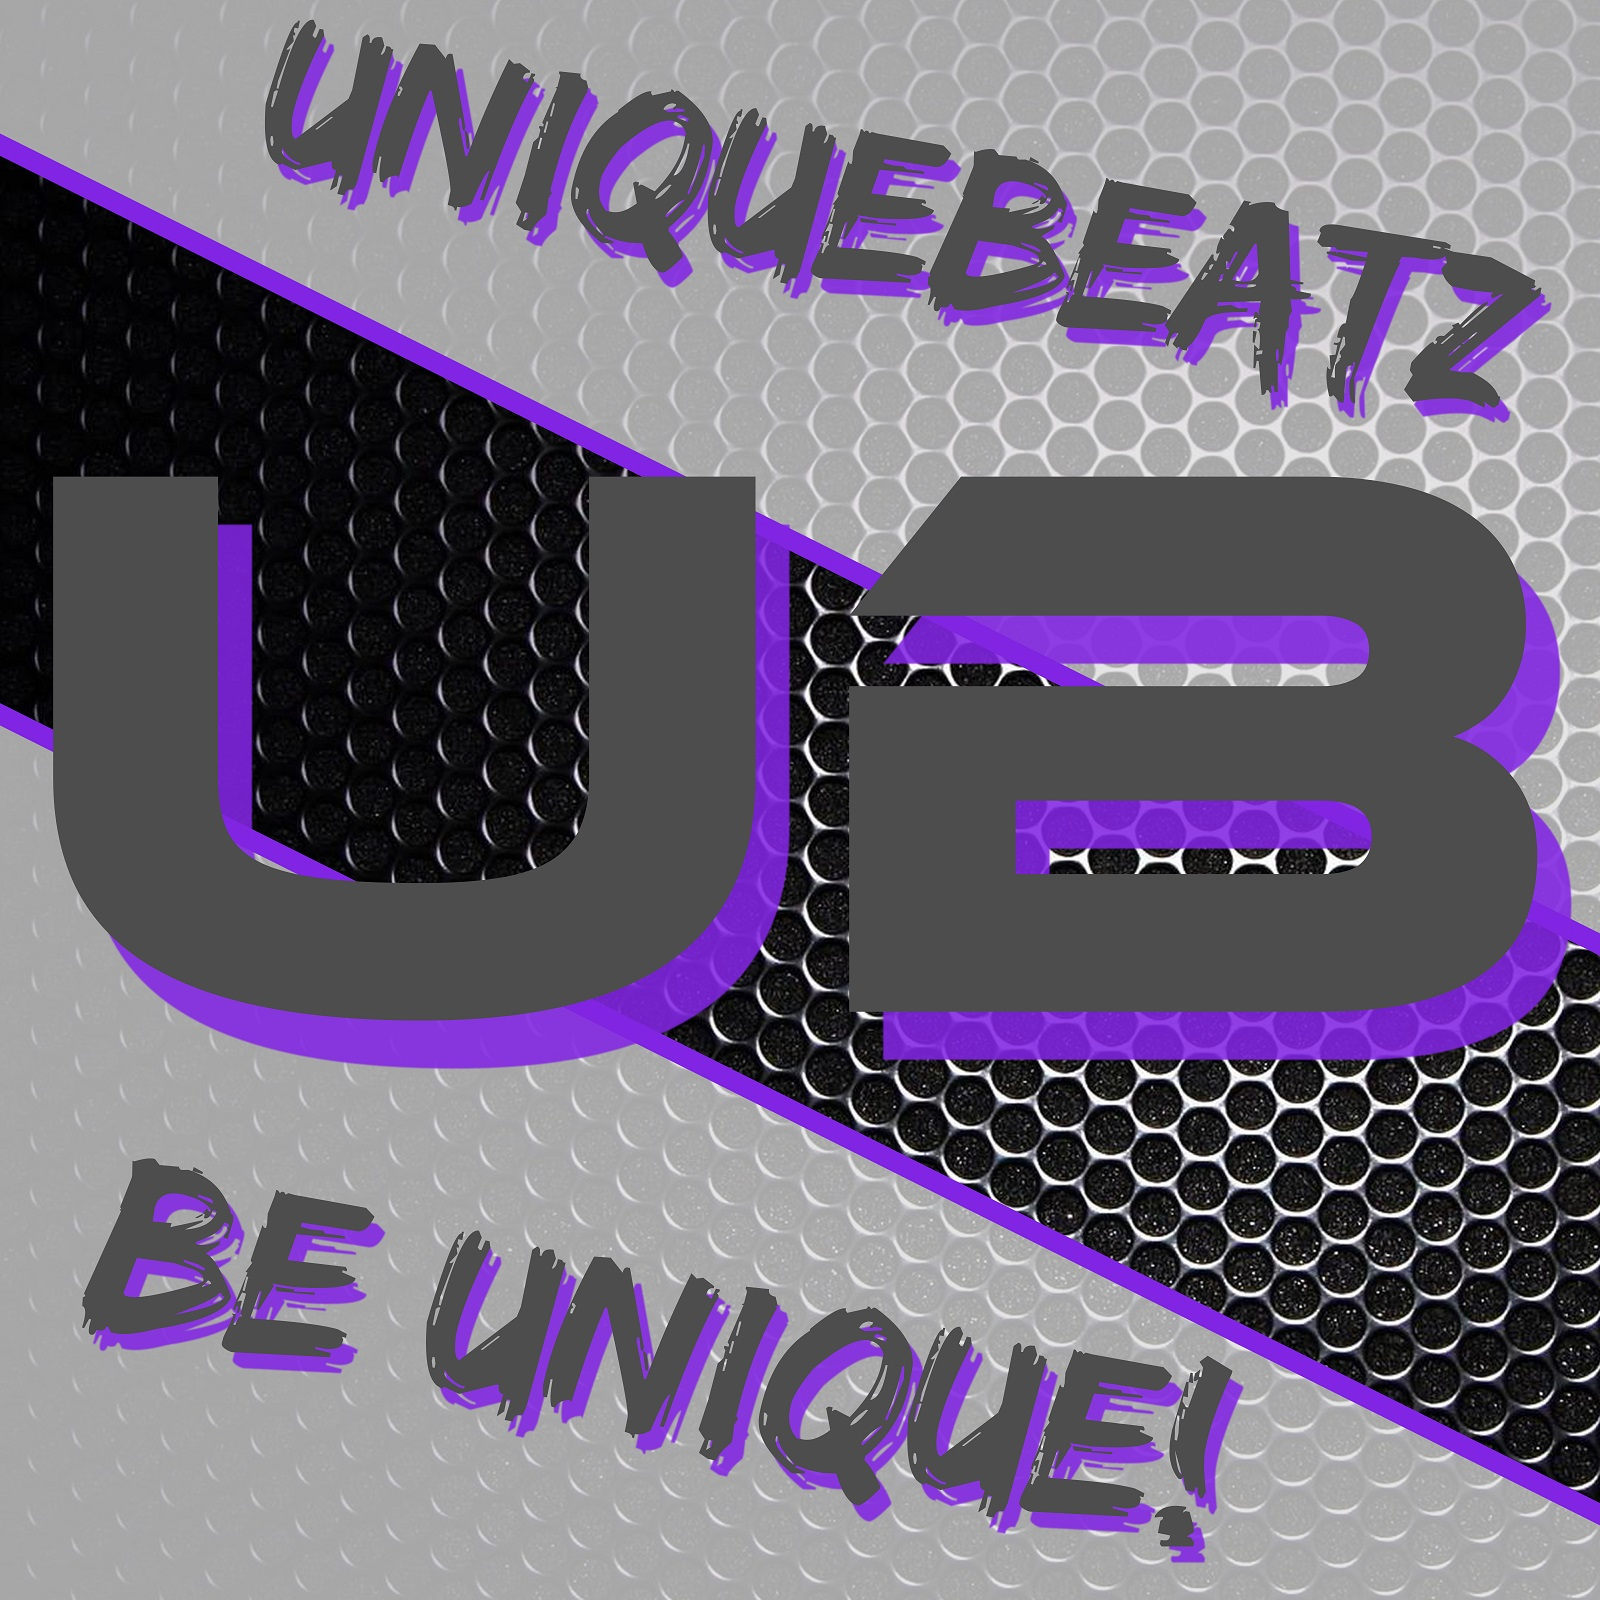 UniqueBeatz - Be Unique!